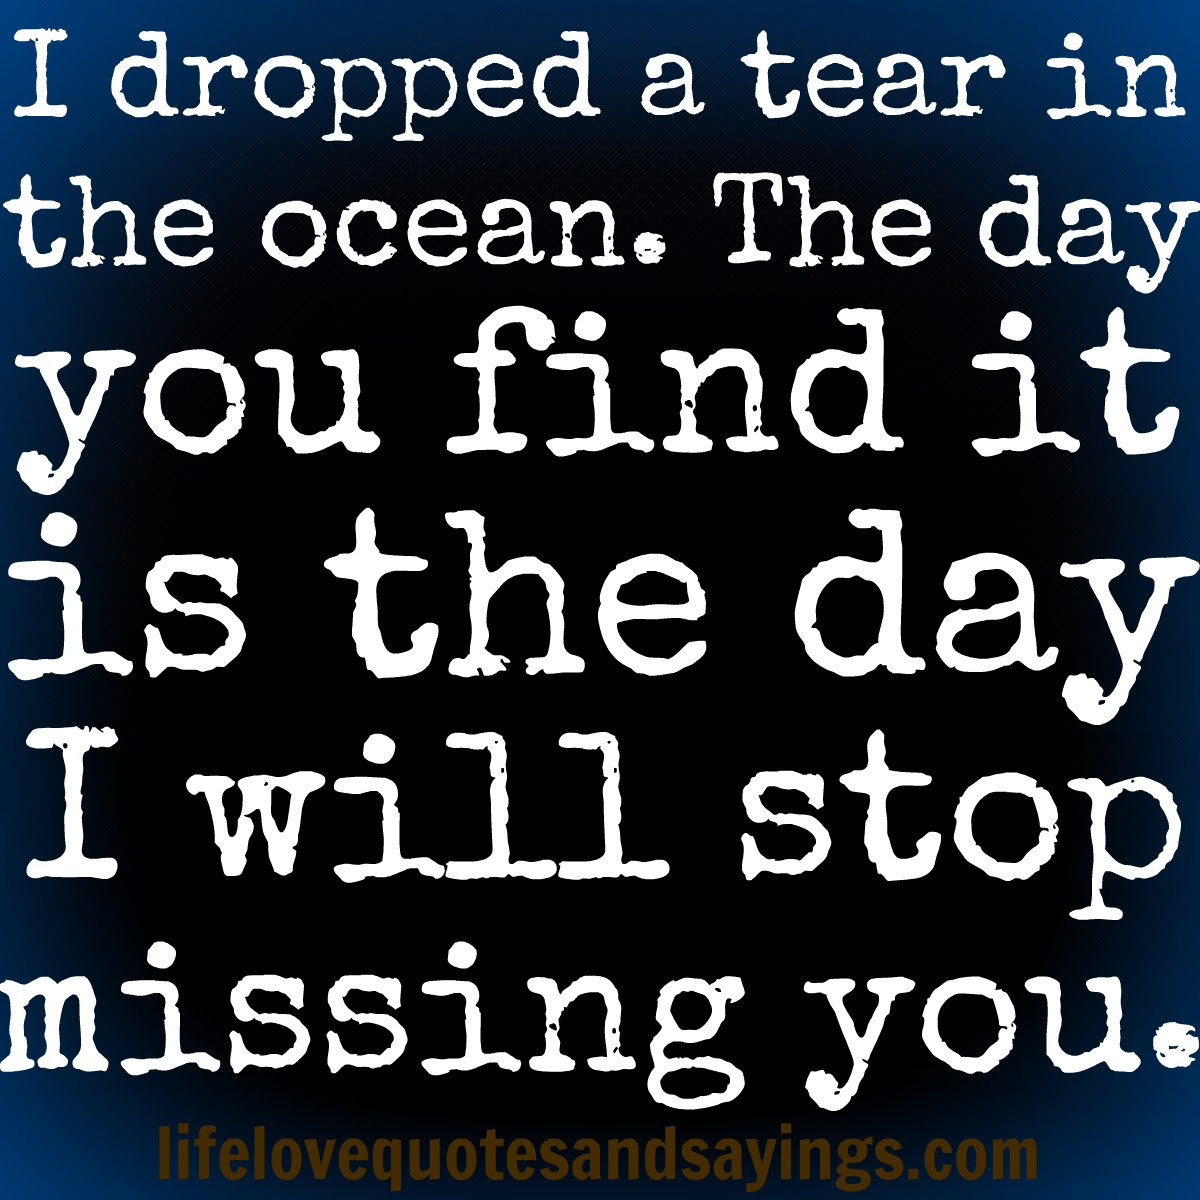 I Dropped A Tear In The Ocean The Day You Find It Is The Day I Will